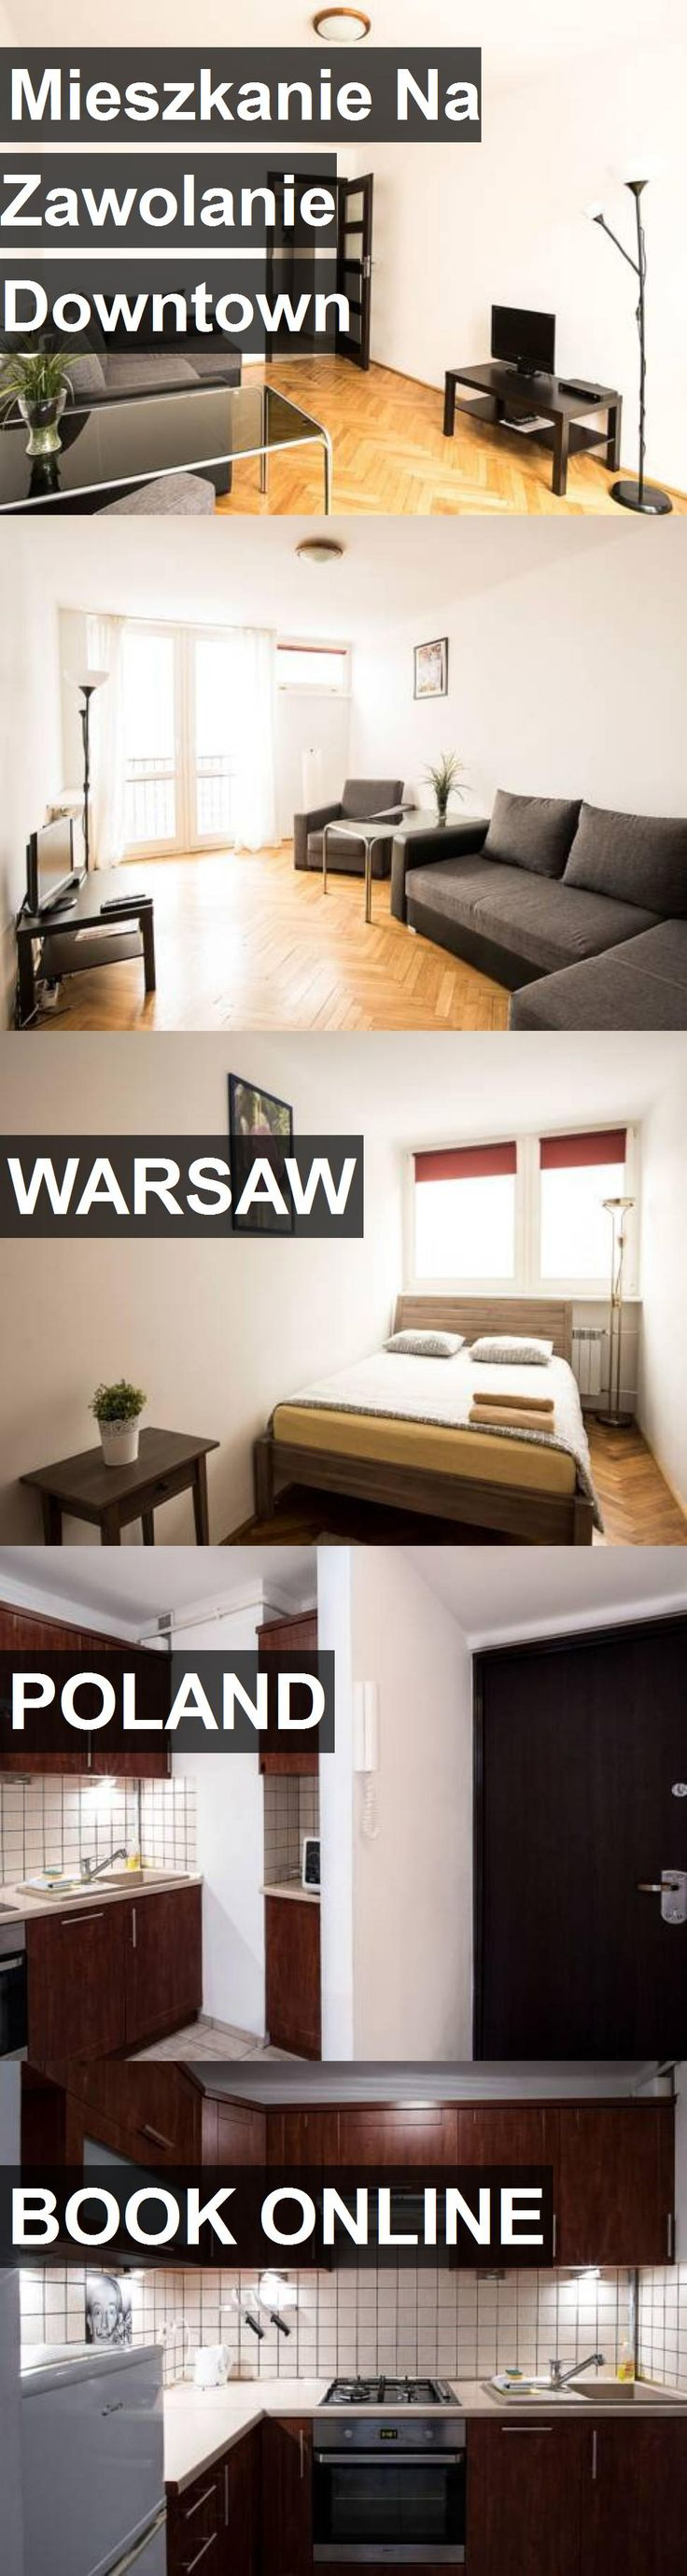 Hotel Mieszkanie Na Zawolanie Downtown in Warsaw, Poland. For more information, photos, reviews and best prices please follow the link. #Poland #Warsaw #travel #vacation #hotel